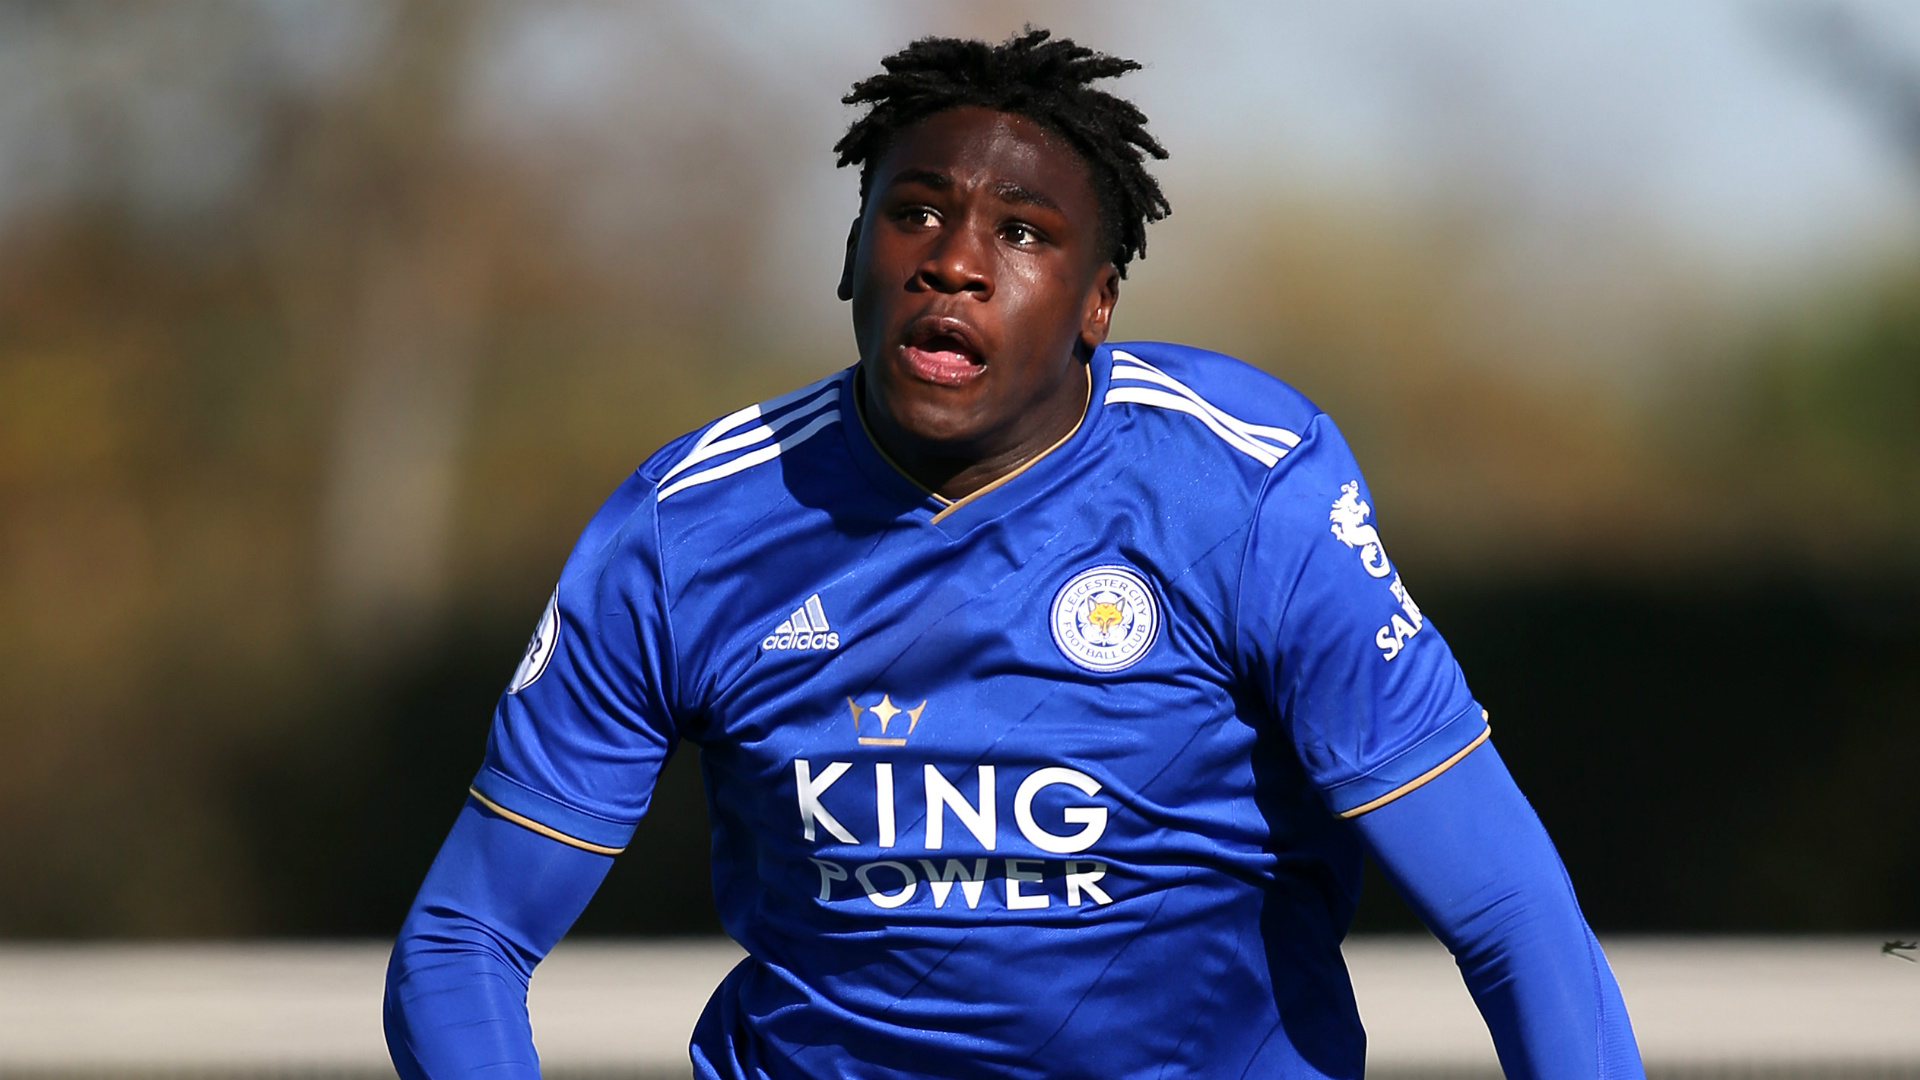 Gerrard thrilled as Rangers sign 'dynamic' Bassey from Leicester